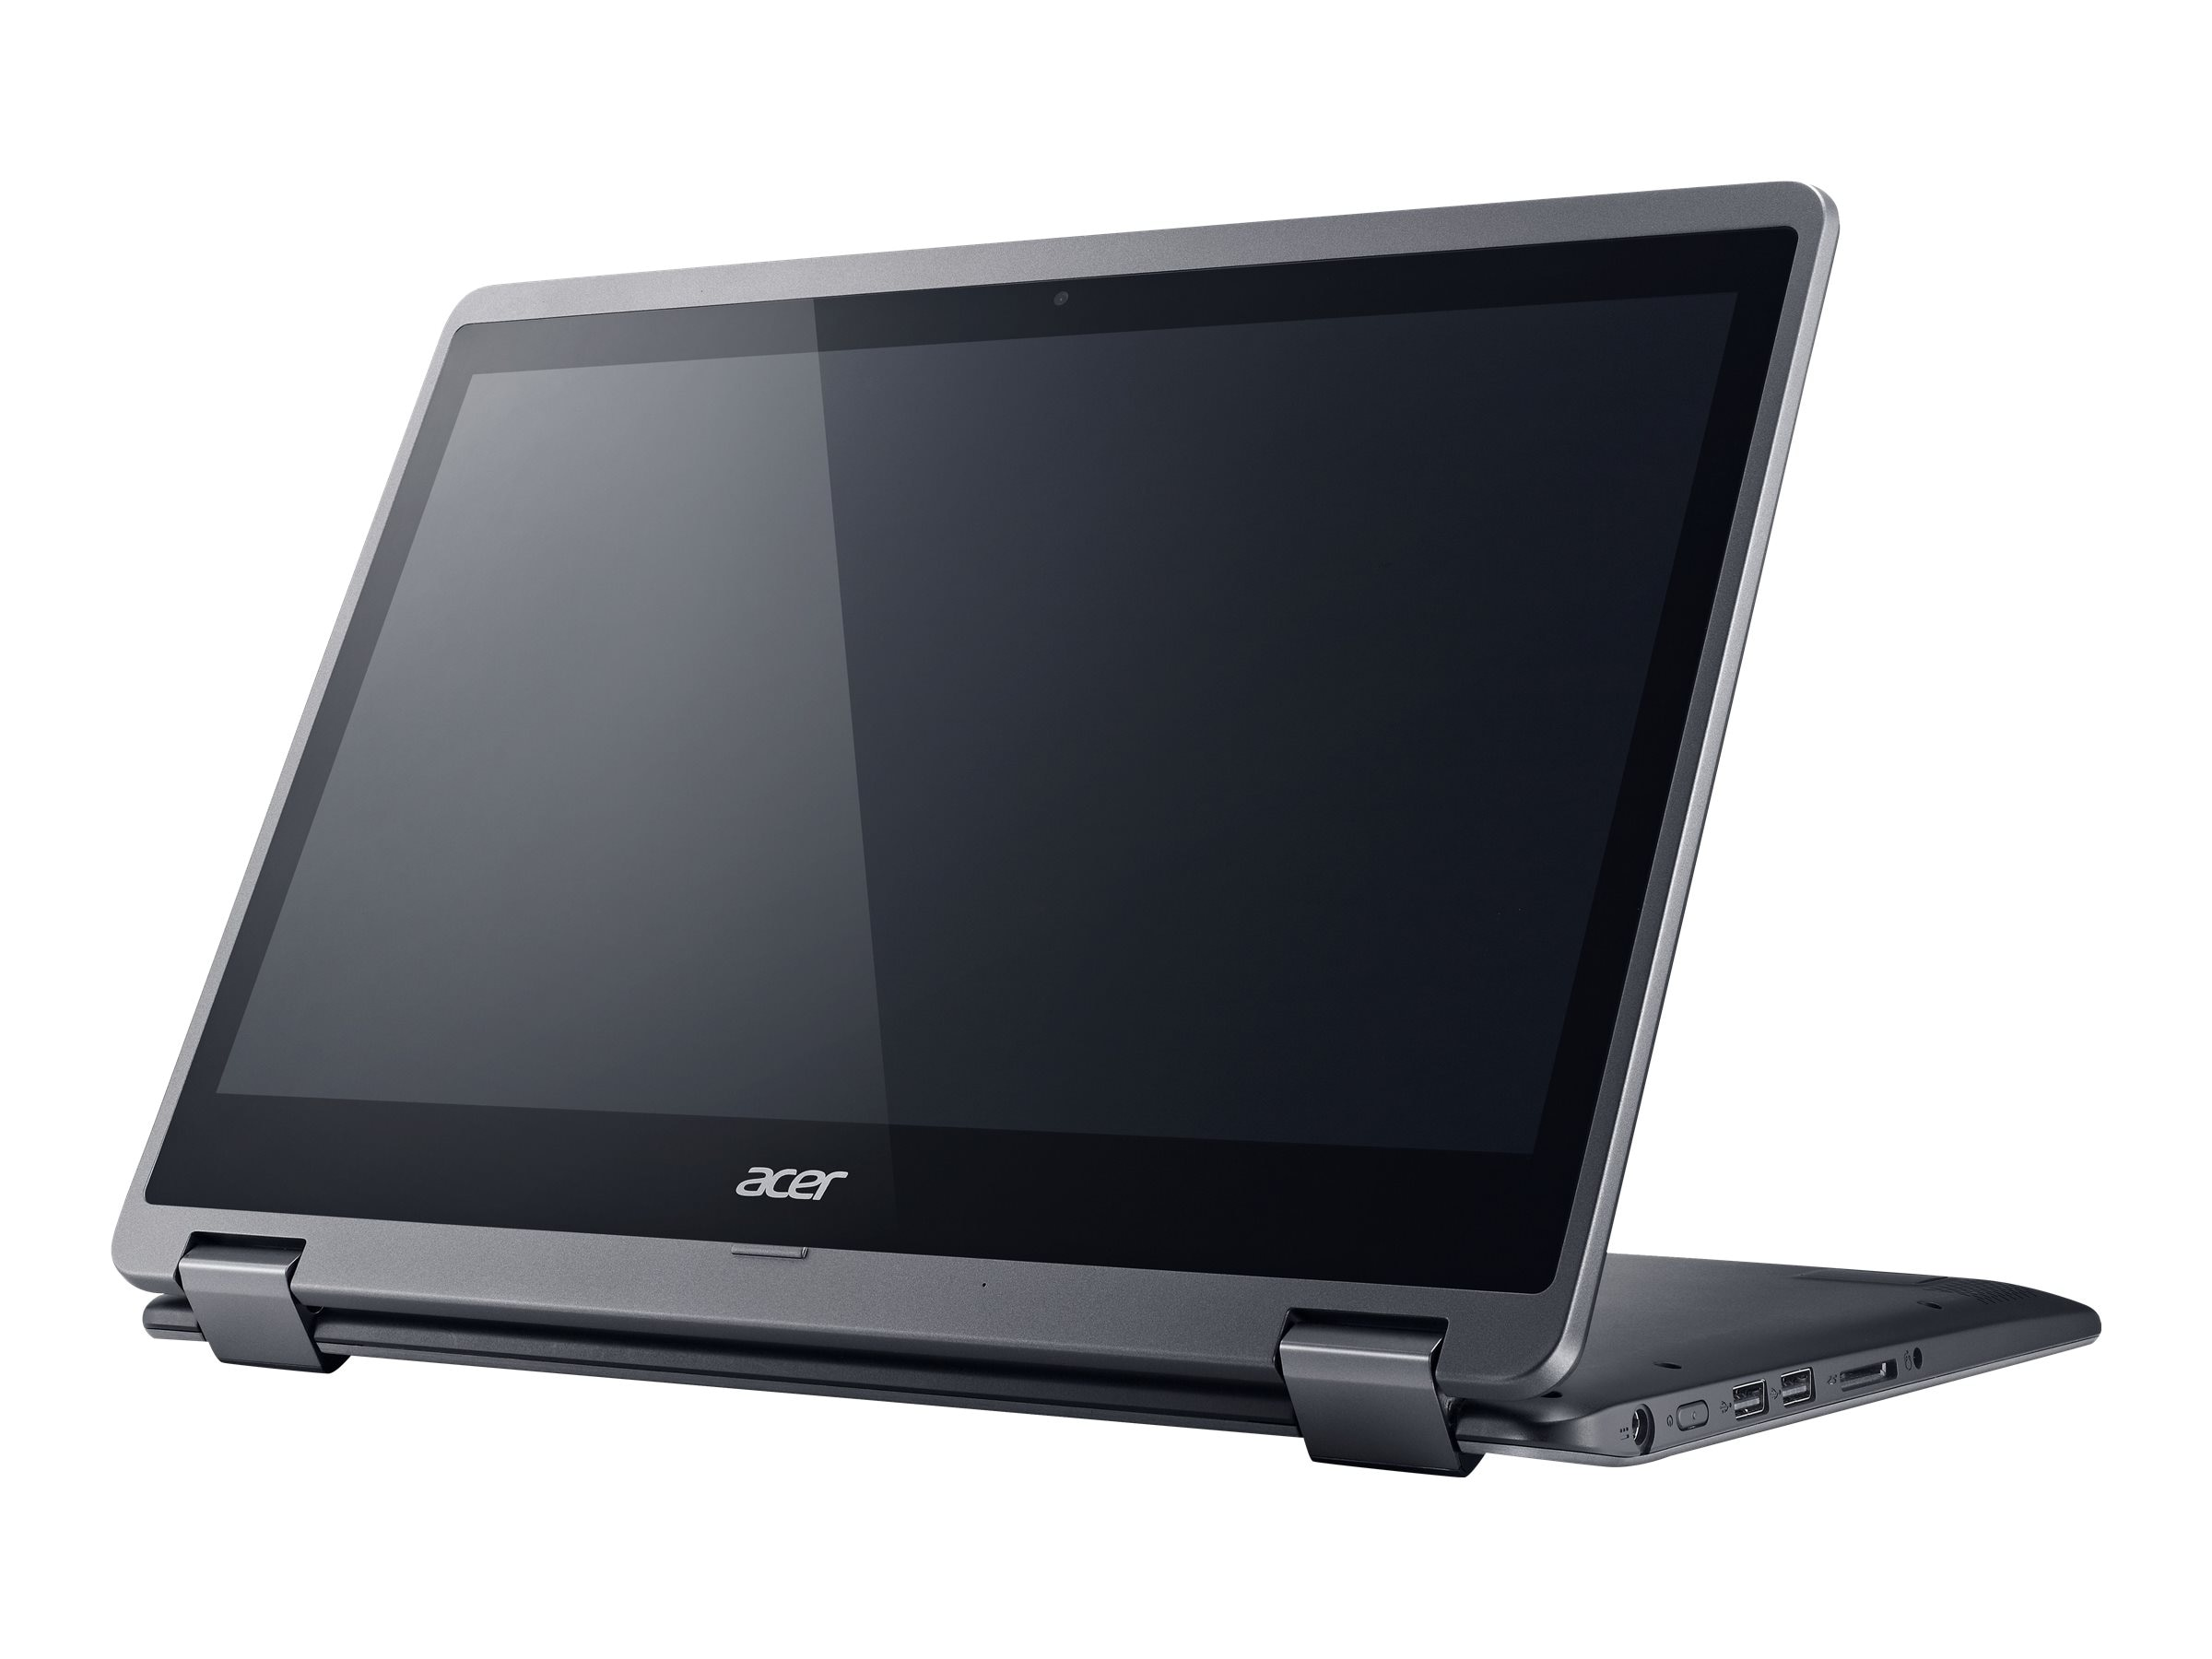 Acer Aspire R3-471T-39EZ Core i3-5005U 2.0GHz 6GB 500GB bgn GNIC BT WC 14 HD MT W10H64, NX.MP4AA.023, 30870488, Notebooks - Convertible